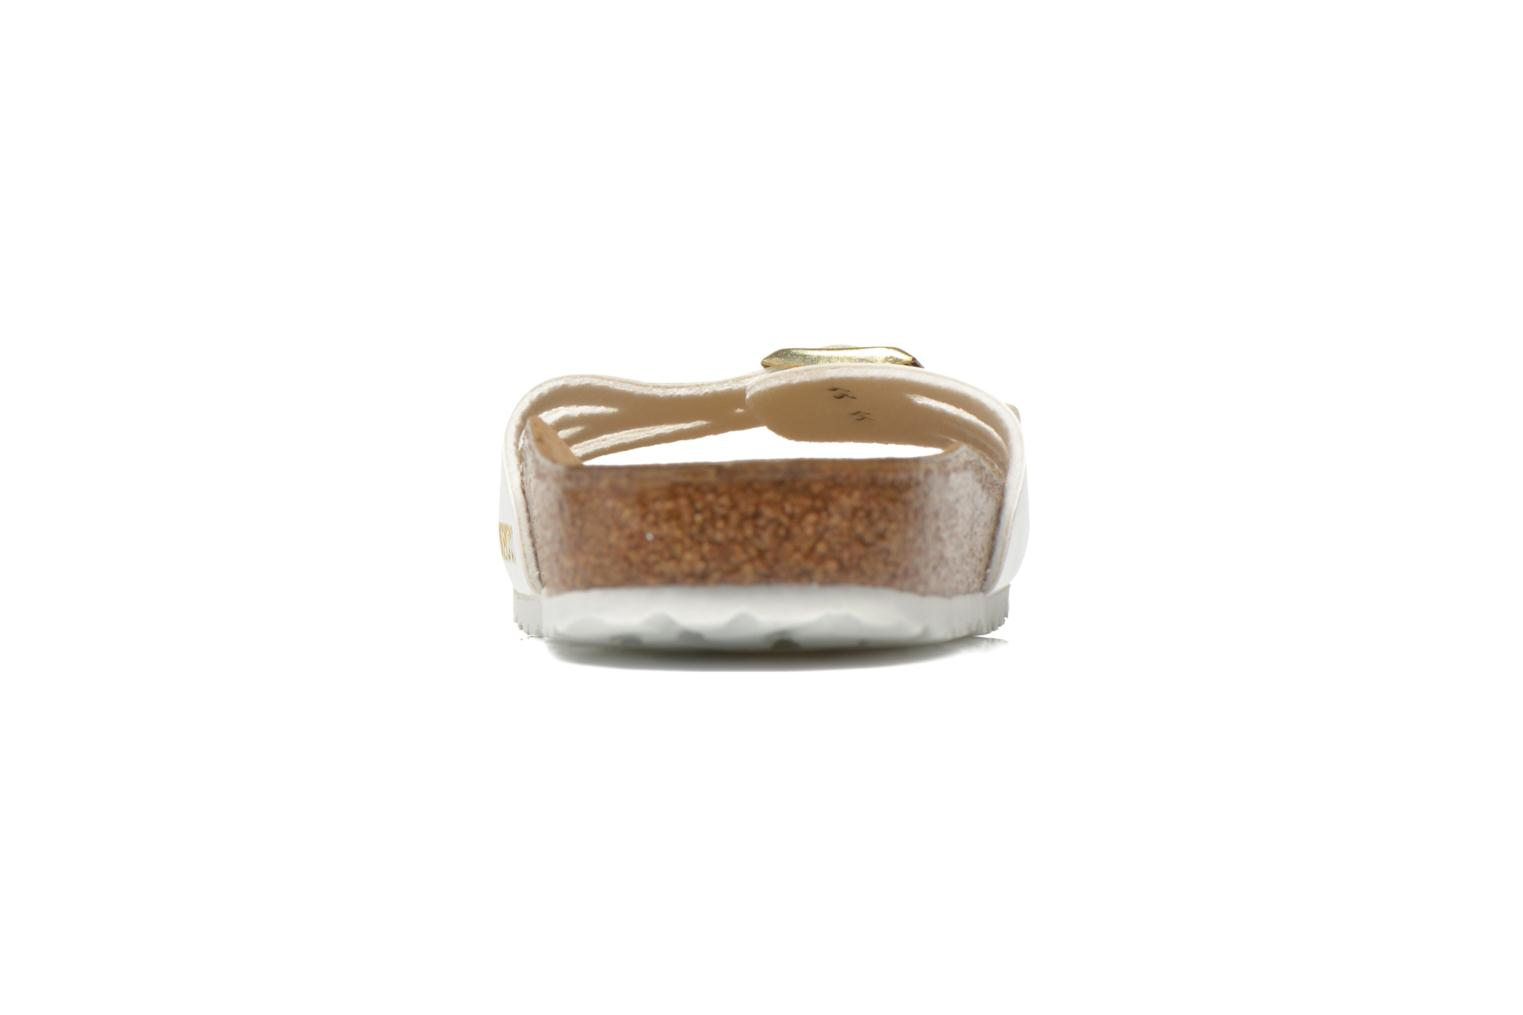 Molina Flor W Vernis Blanc / Boucle Or